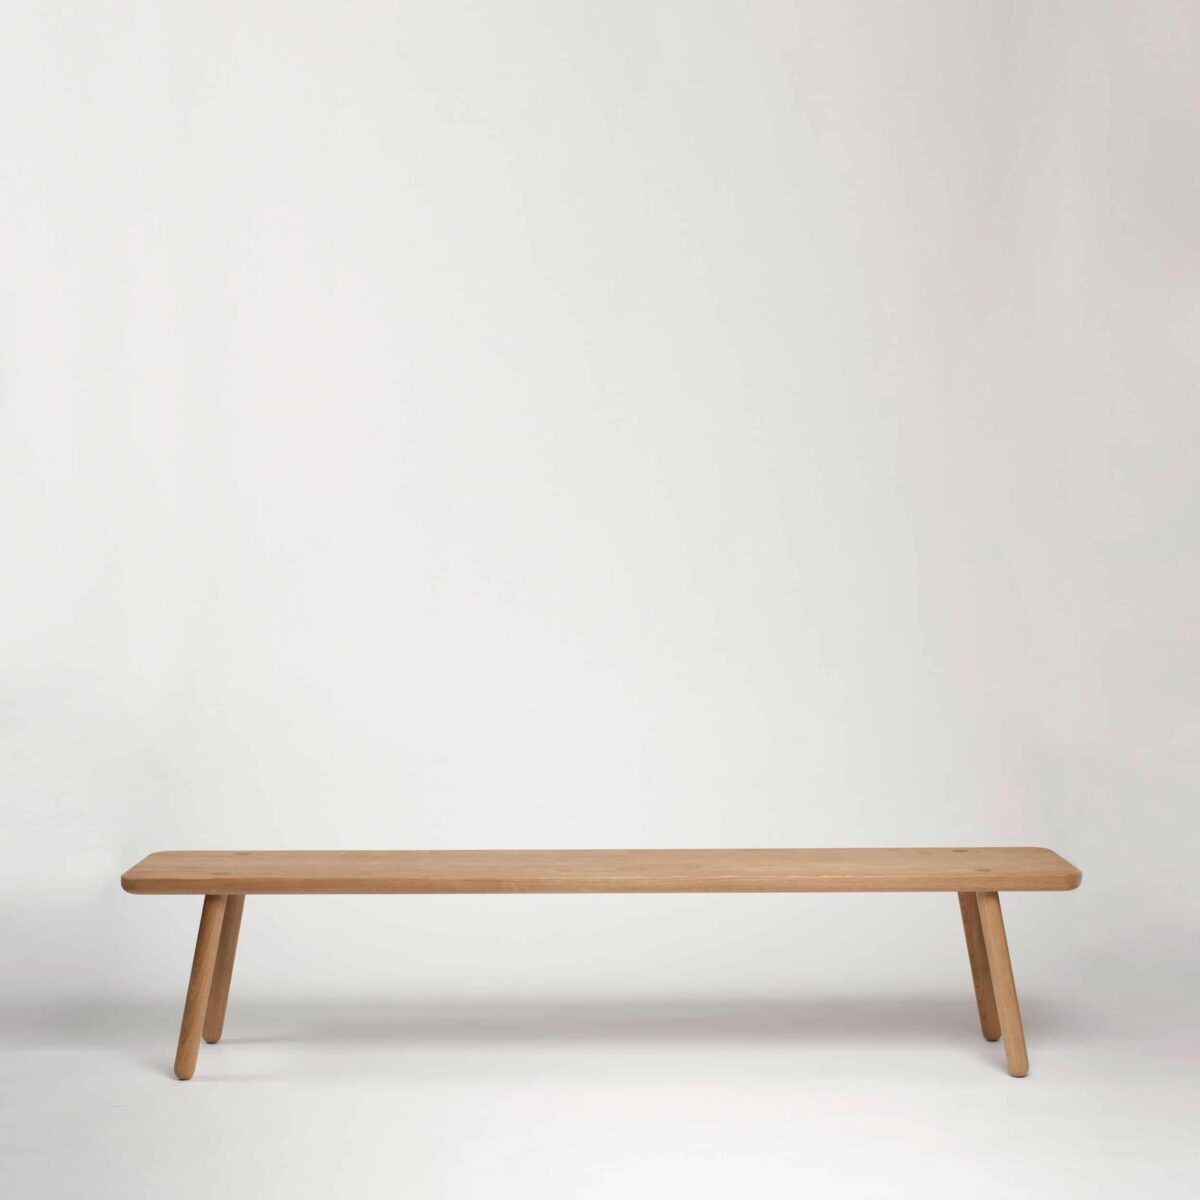 bench-one-another-country-007